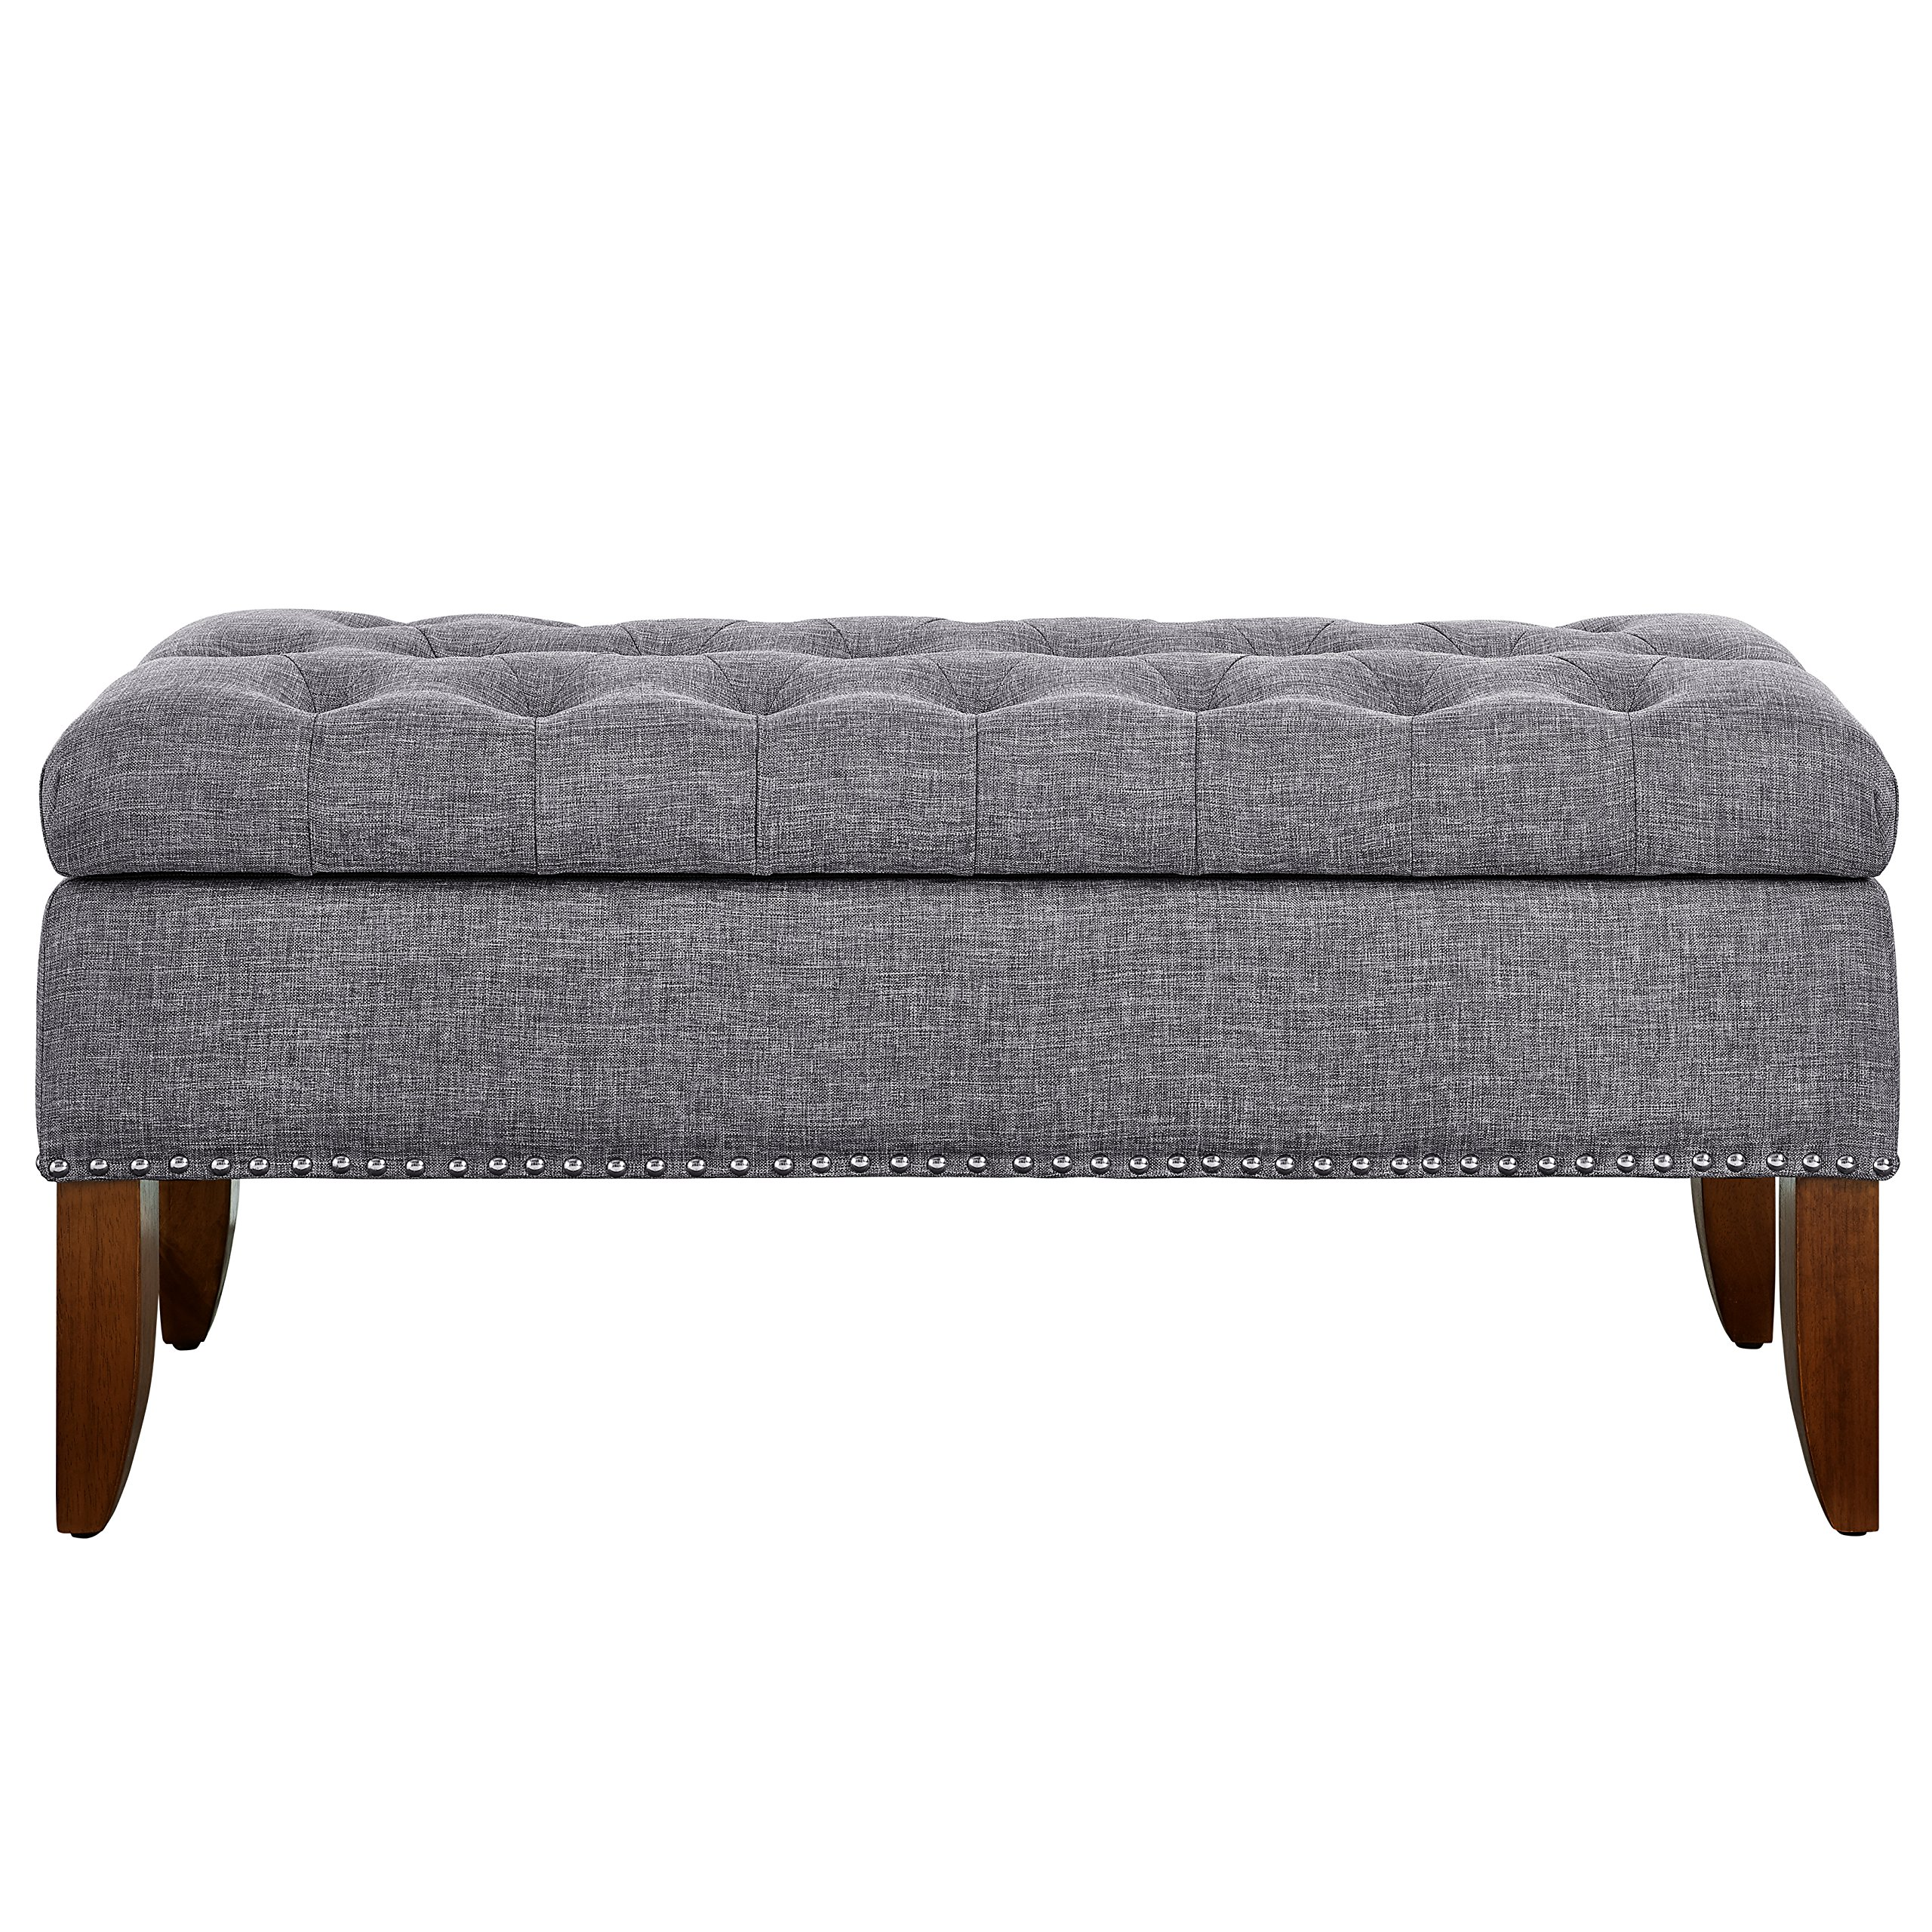 Pulaski DS-D107003-620 Hinged Top Button Tufted Bed Heathered Grey, 41.50'' W x 15.75'' D x 18.50'' H Upholstered Storage Bench, by Pulaski